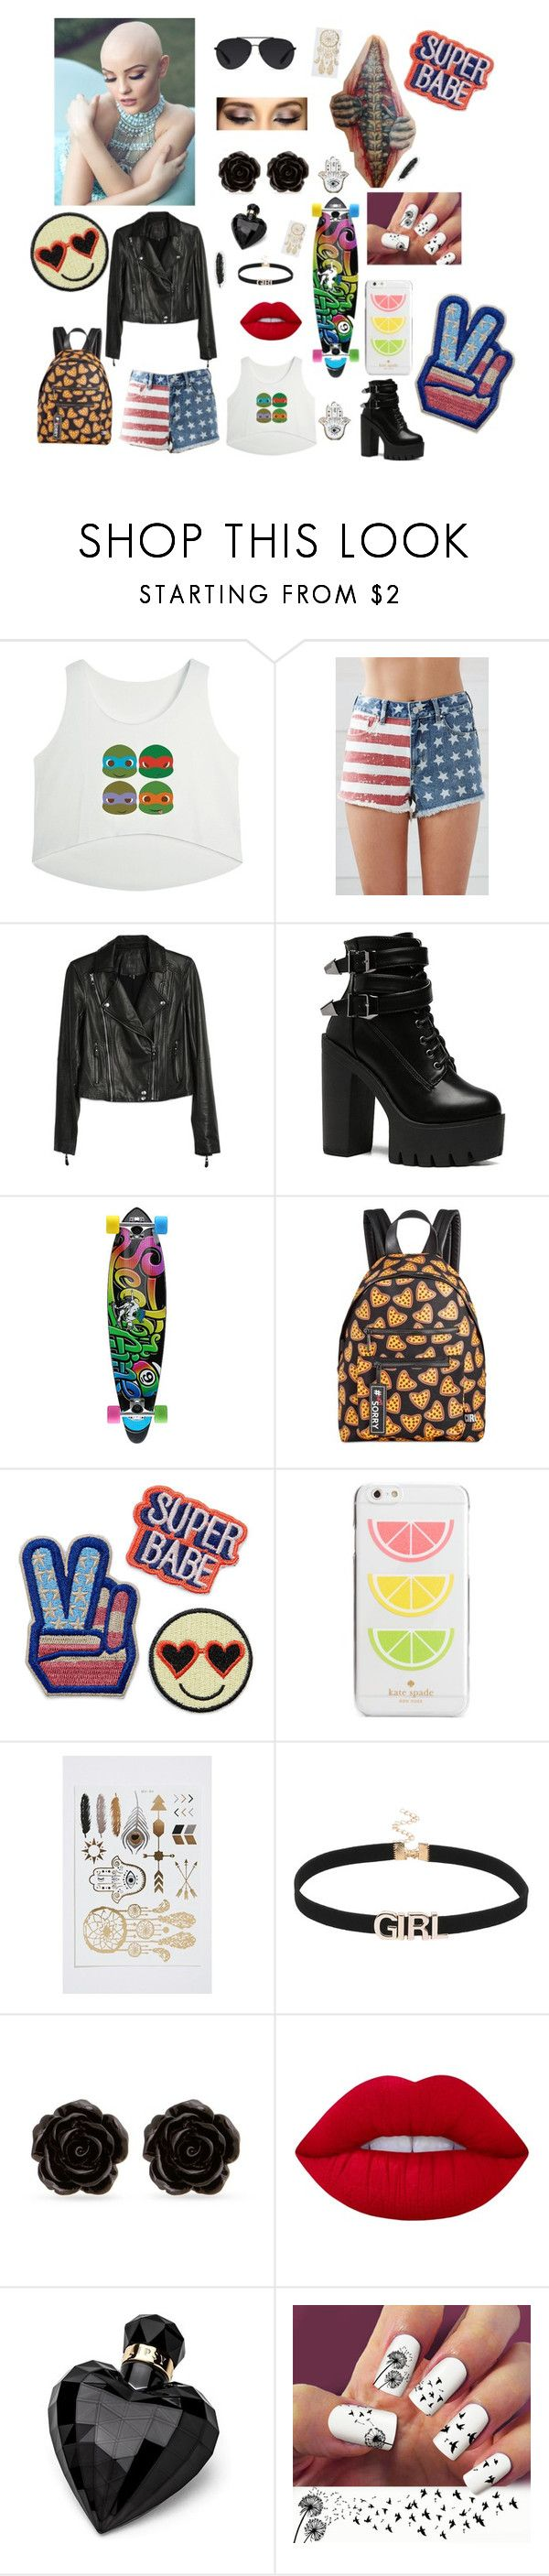 """""""Freetime"""" by judith-s ❤ liked on Polyvore featuring Bullhead Denim Co., Paige Denim, Billabong, Circus by Sam Edelman, Kate Spade, Erica Lyons, Lime Crime, Lipsy and Bally"""